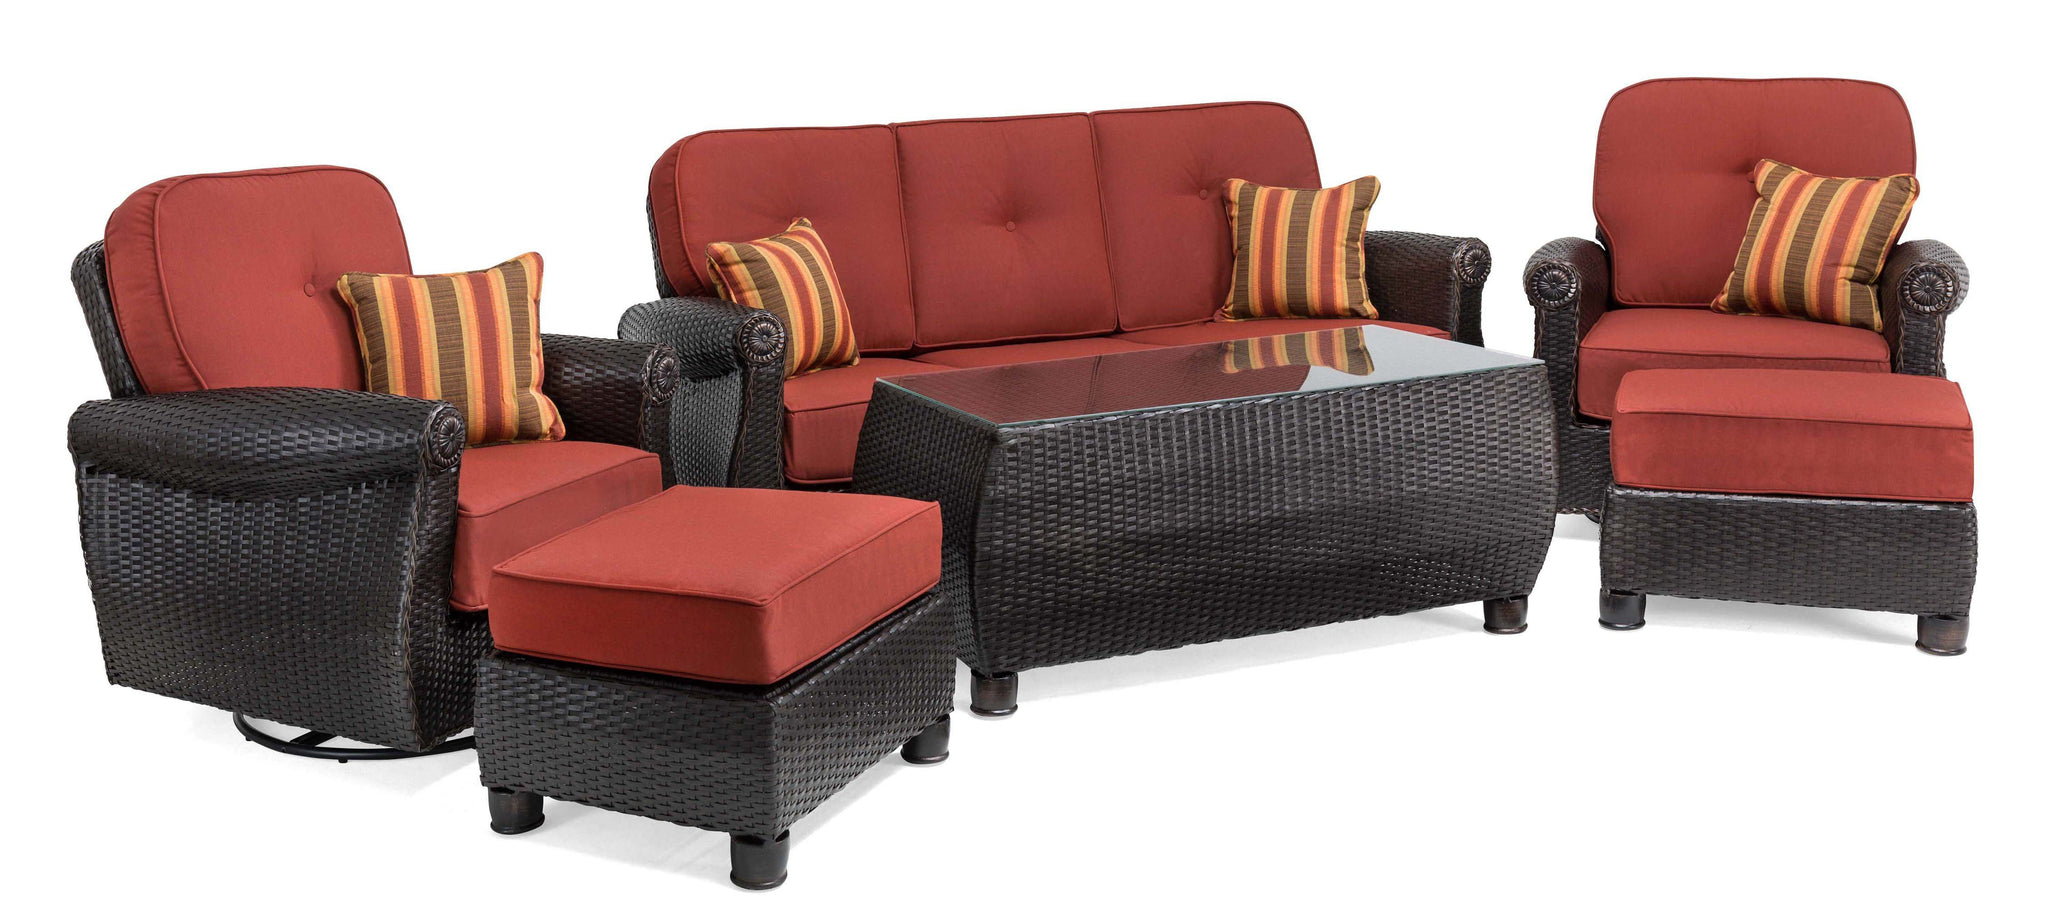 Beau Breckenridge 6 Piece Patio Furniture Seating Set: Two Swivel Rockers, Sofa,  Coffee Table, And Two Ottomans (Brick Red)